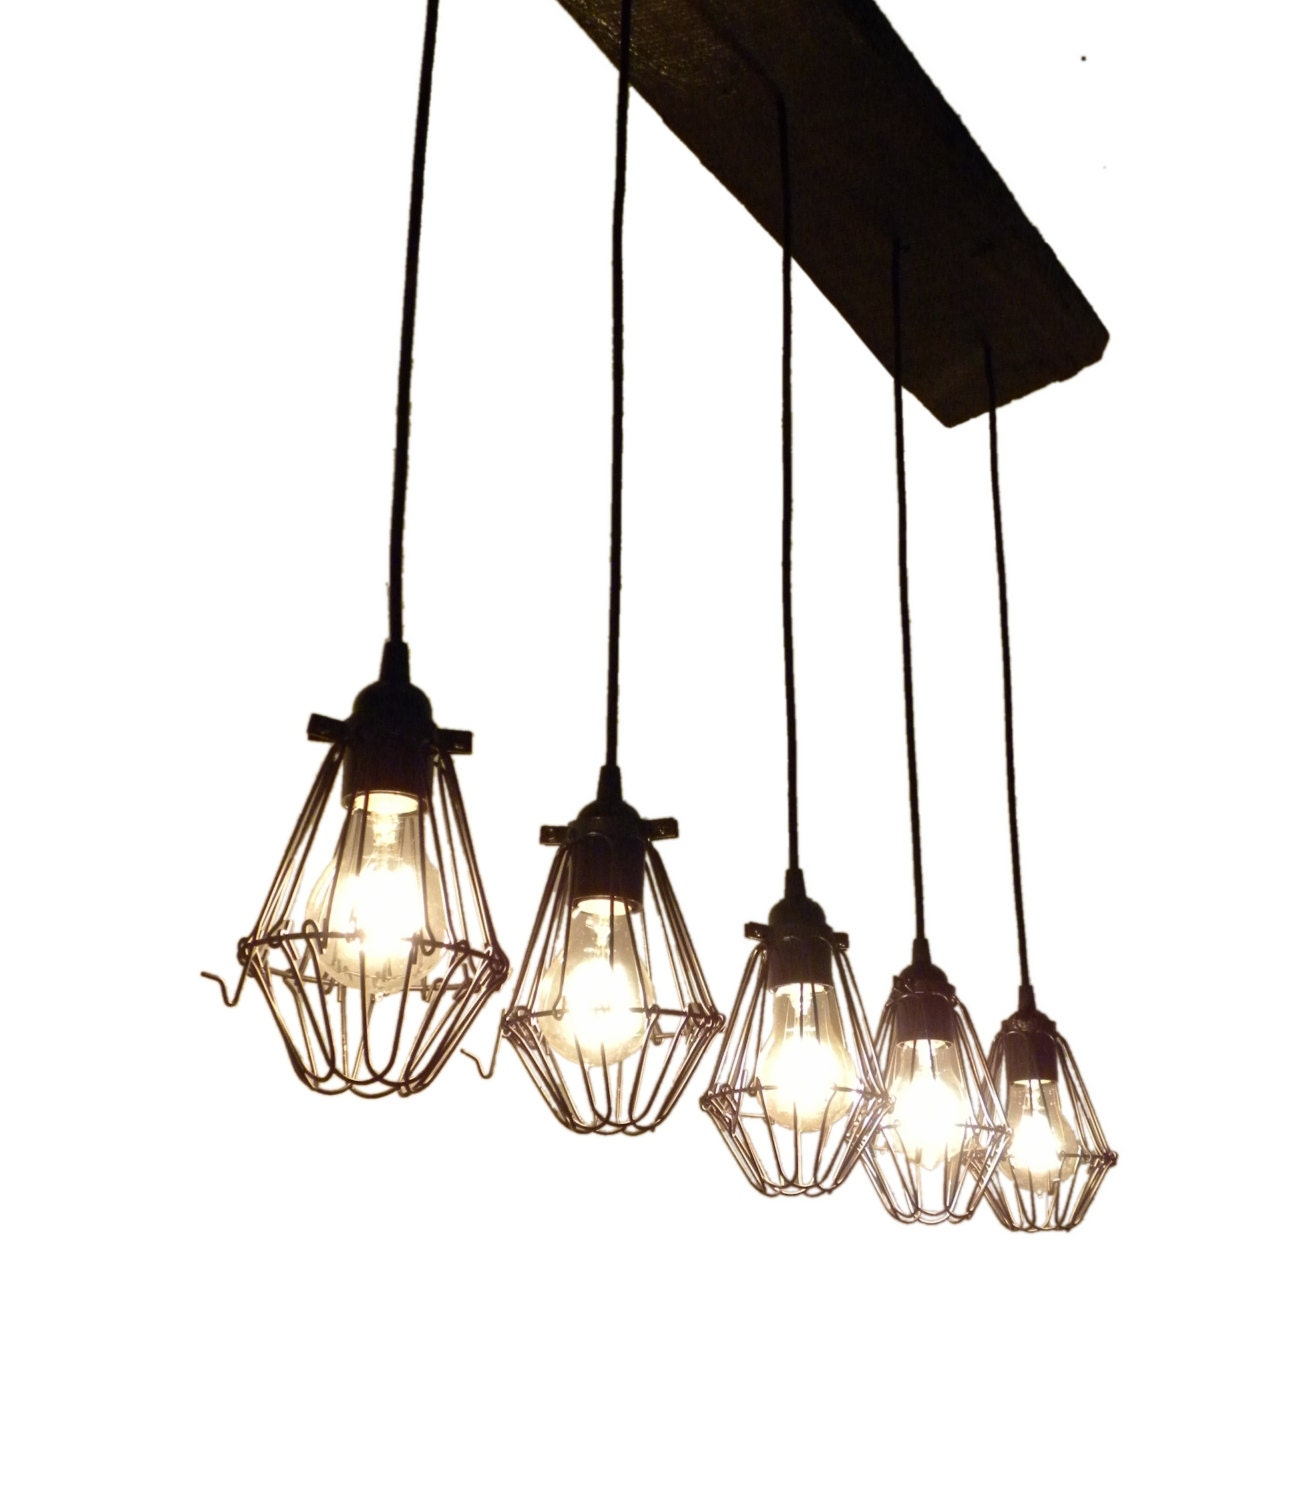 Modern reclaimed wood chandelier pendant light urban for Wood pendant chandelier